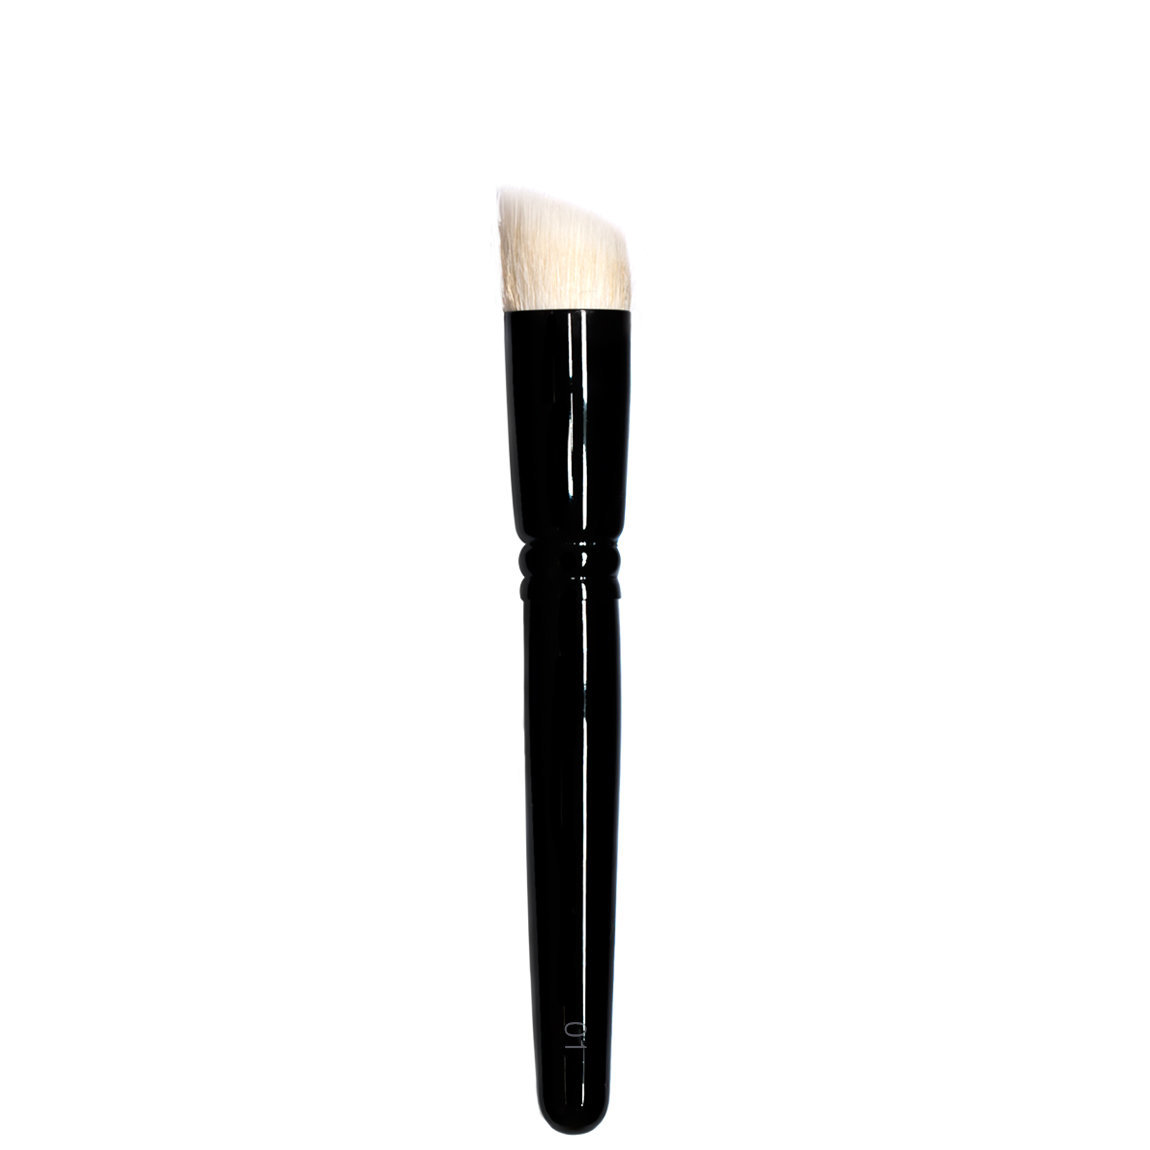 Wayne Goss Brush 01 Foundation Brush product swatch.